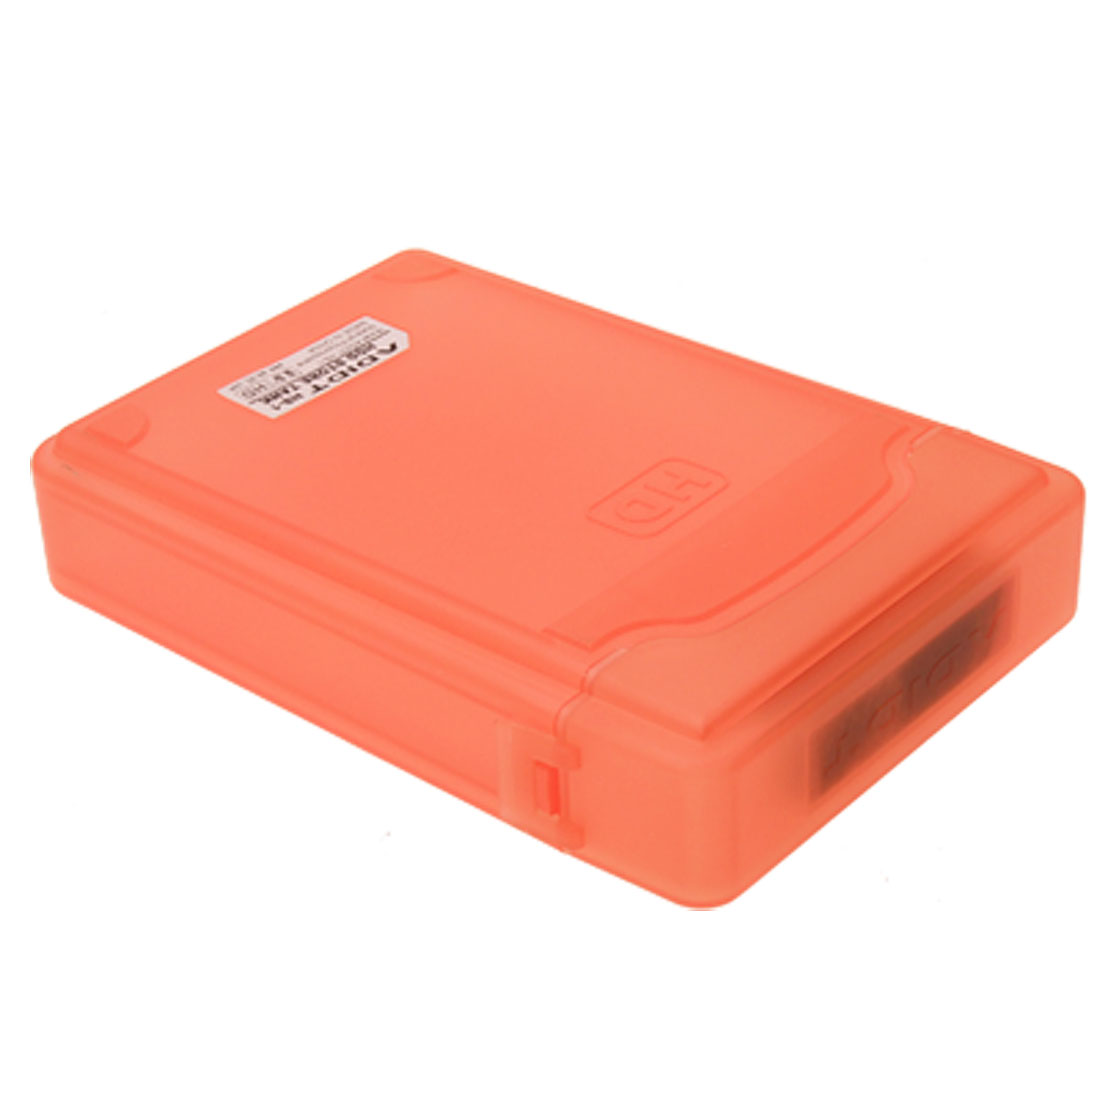 3.5 Inch HDD Hard Disk Drive Storage Tank Case Orange